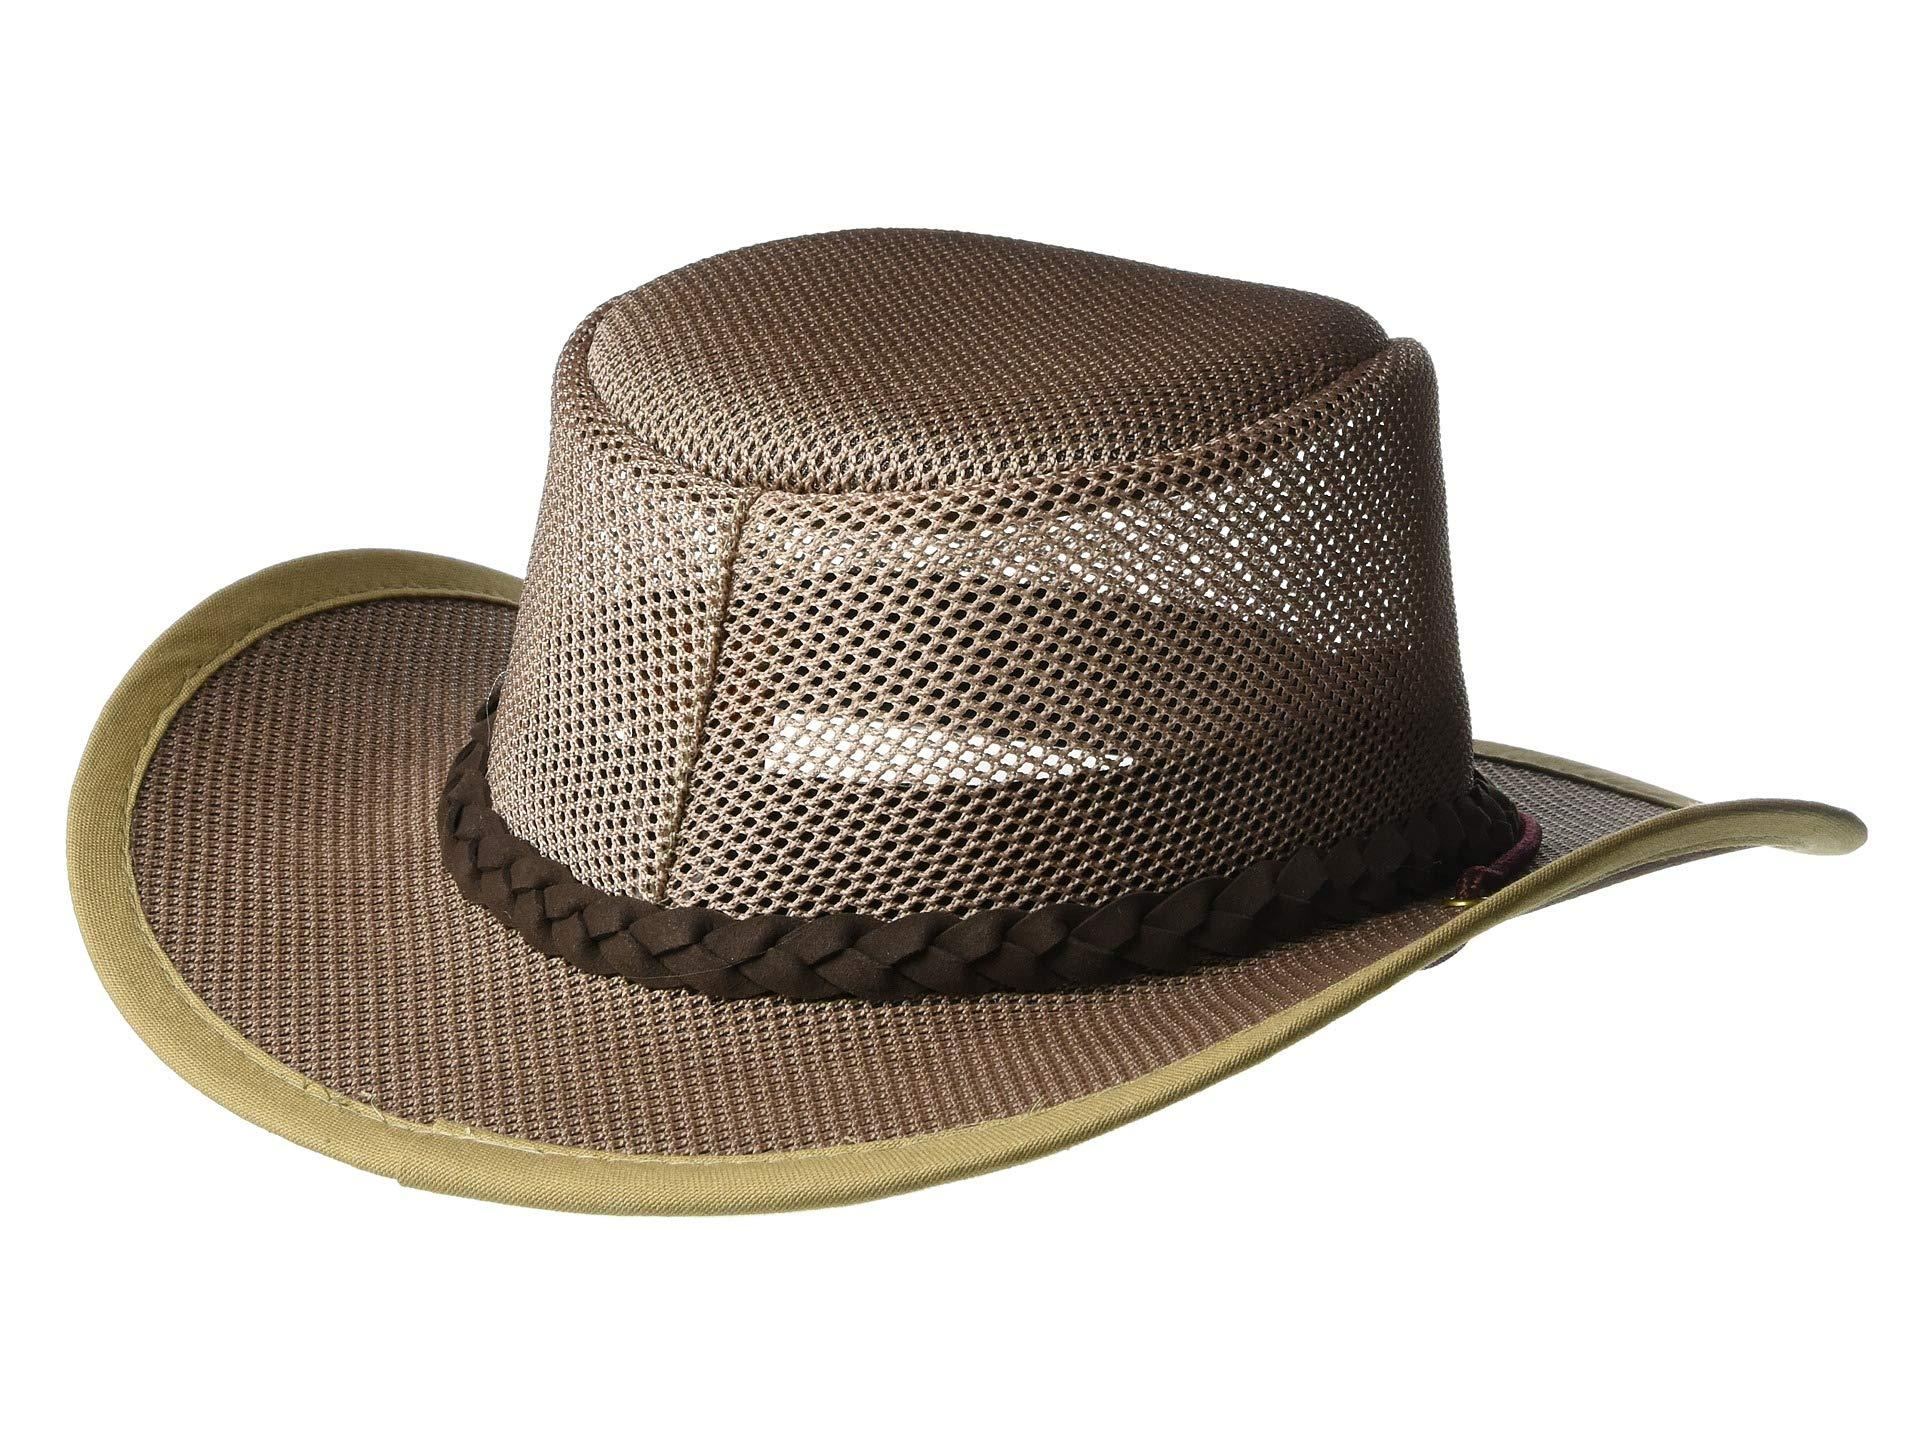 ce95eeb1bc012a Stetson - Multicolor Mesh Covered Nylon Safari (mushroom) Safari Hats for  Men - Lyst. View fullscreen